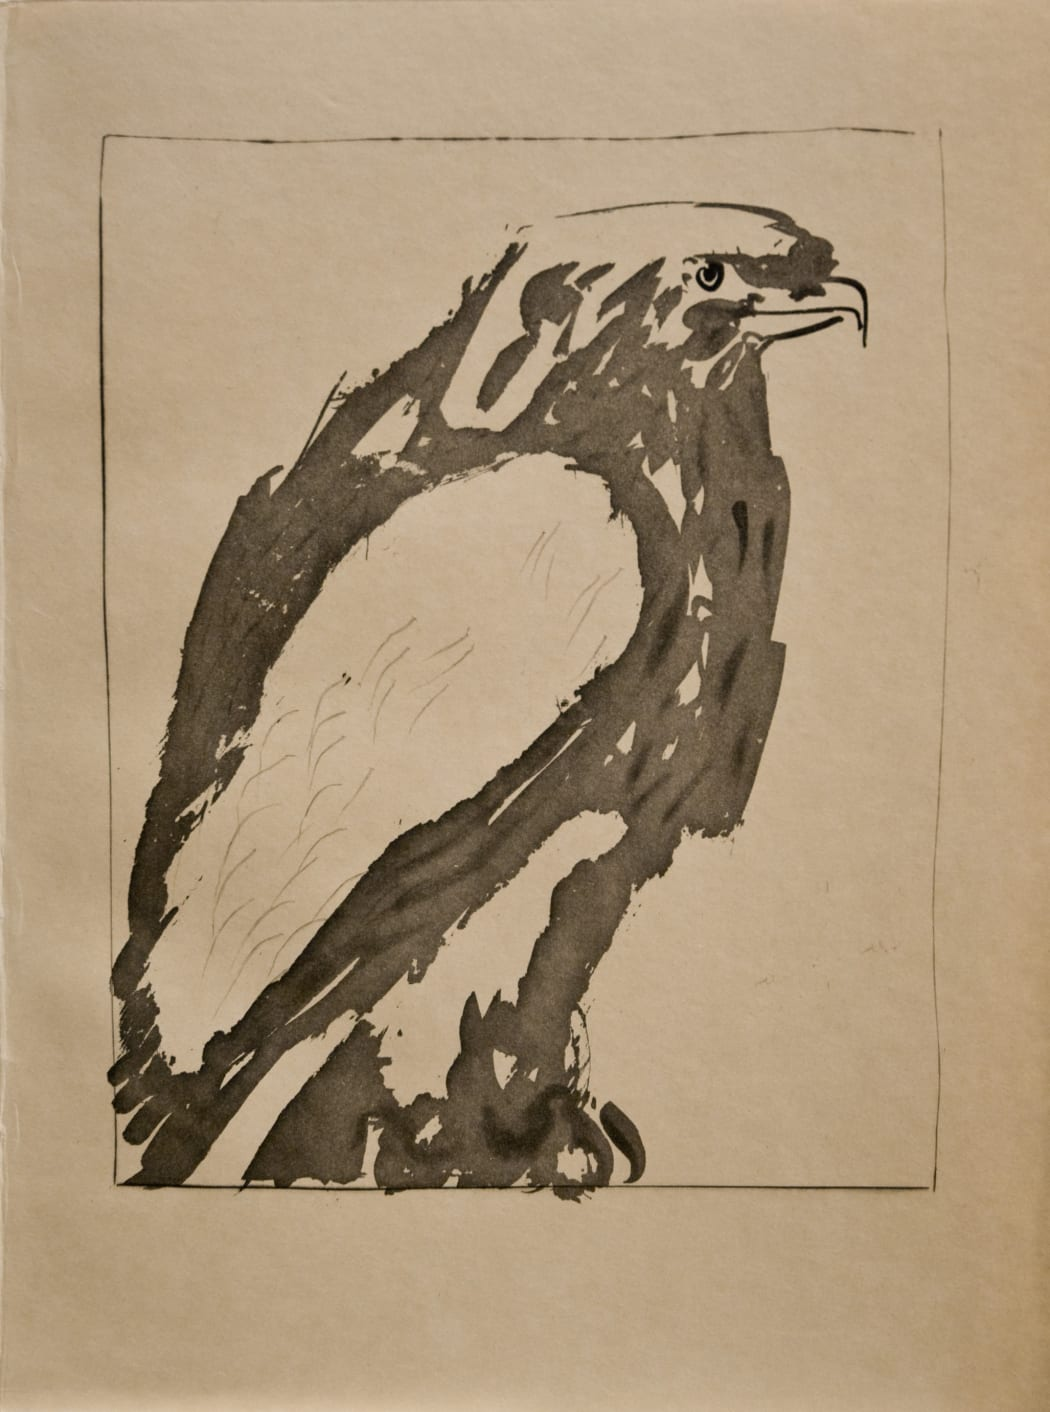 L'Aigle Blanc (The Eagle) (Bloch 340), 1936, sugarlift aquatint, drypoint, and scraper, 14 3/8 x 11 inches